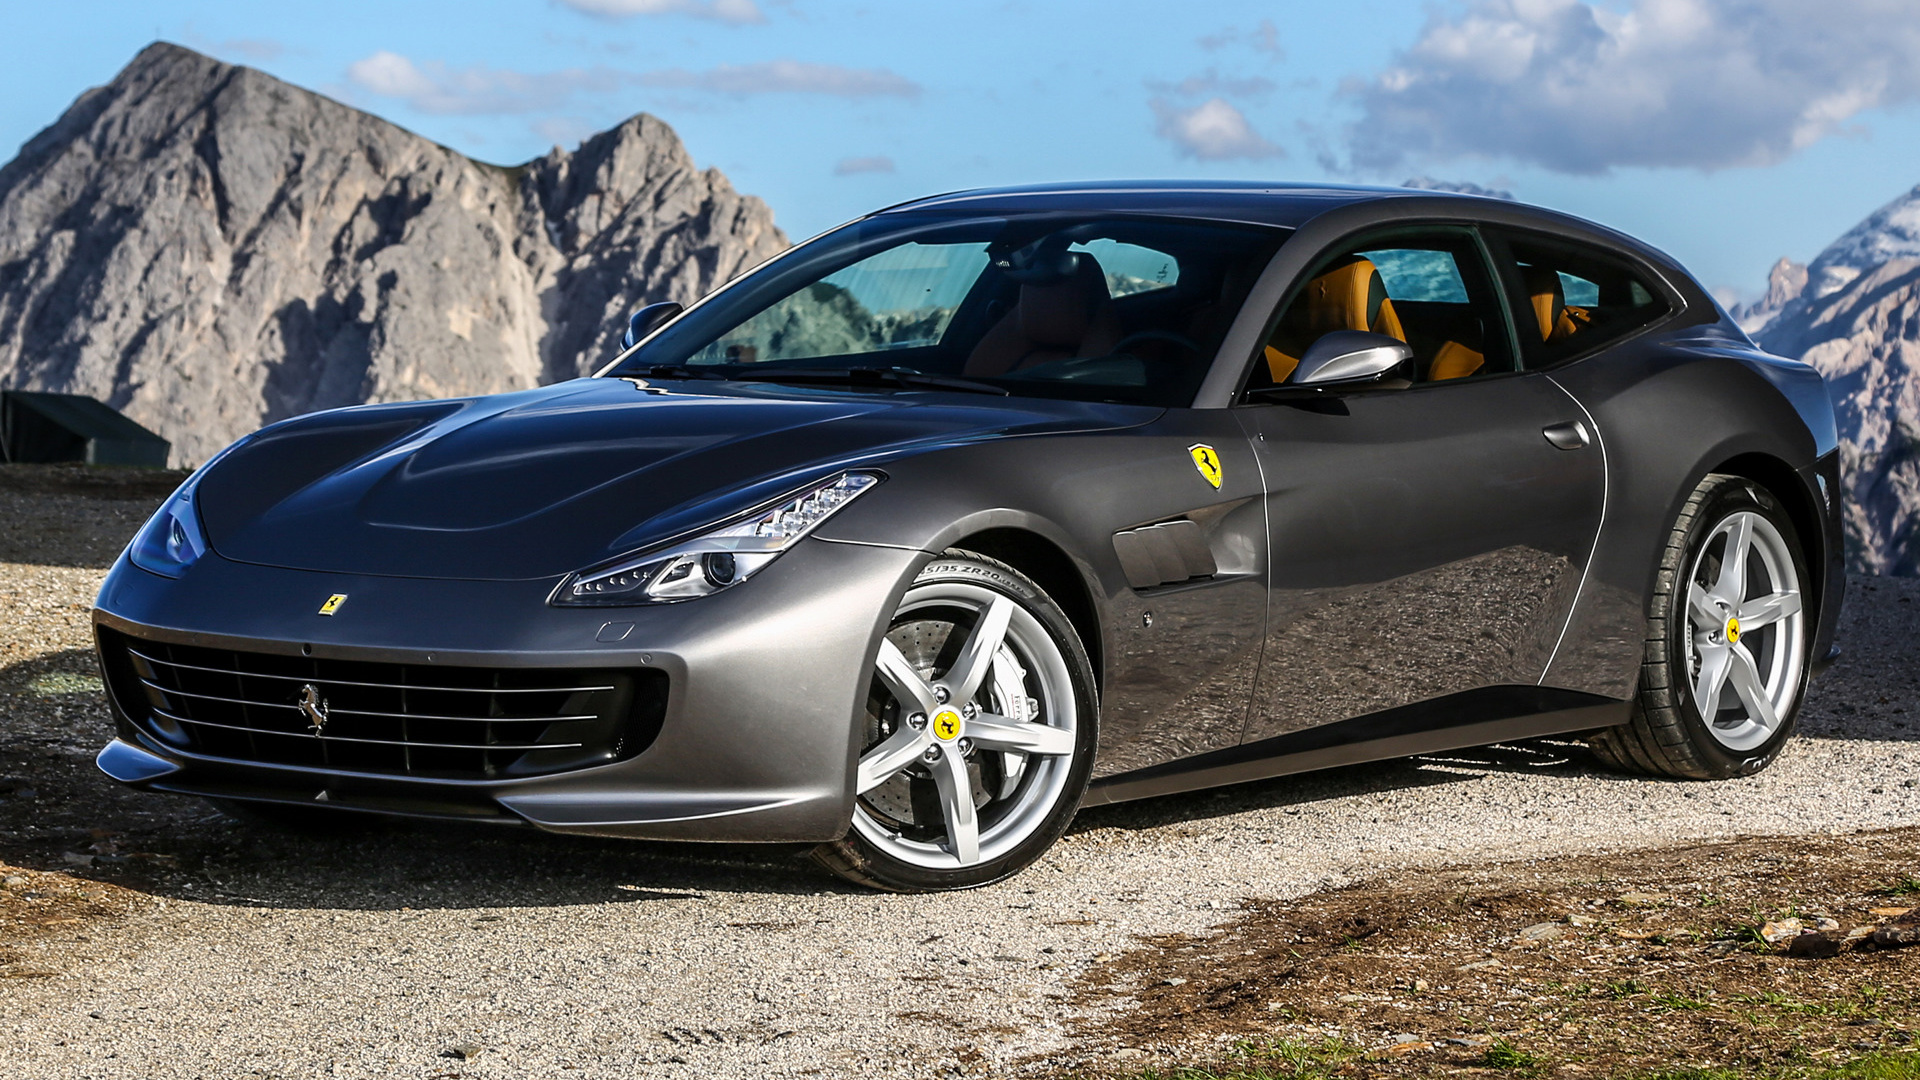 Ferrari GTC4Lusso (2016) Wallpapers And HD Images